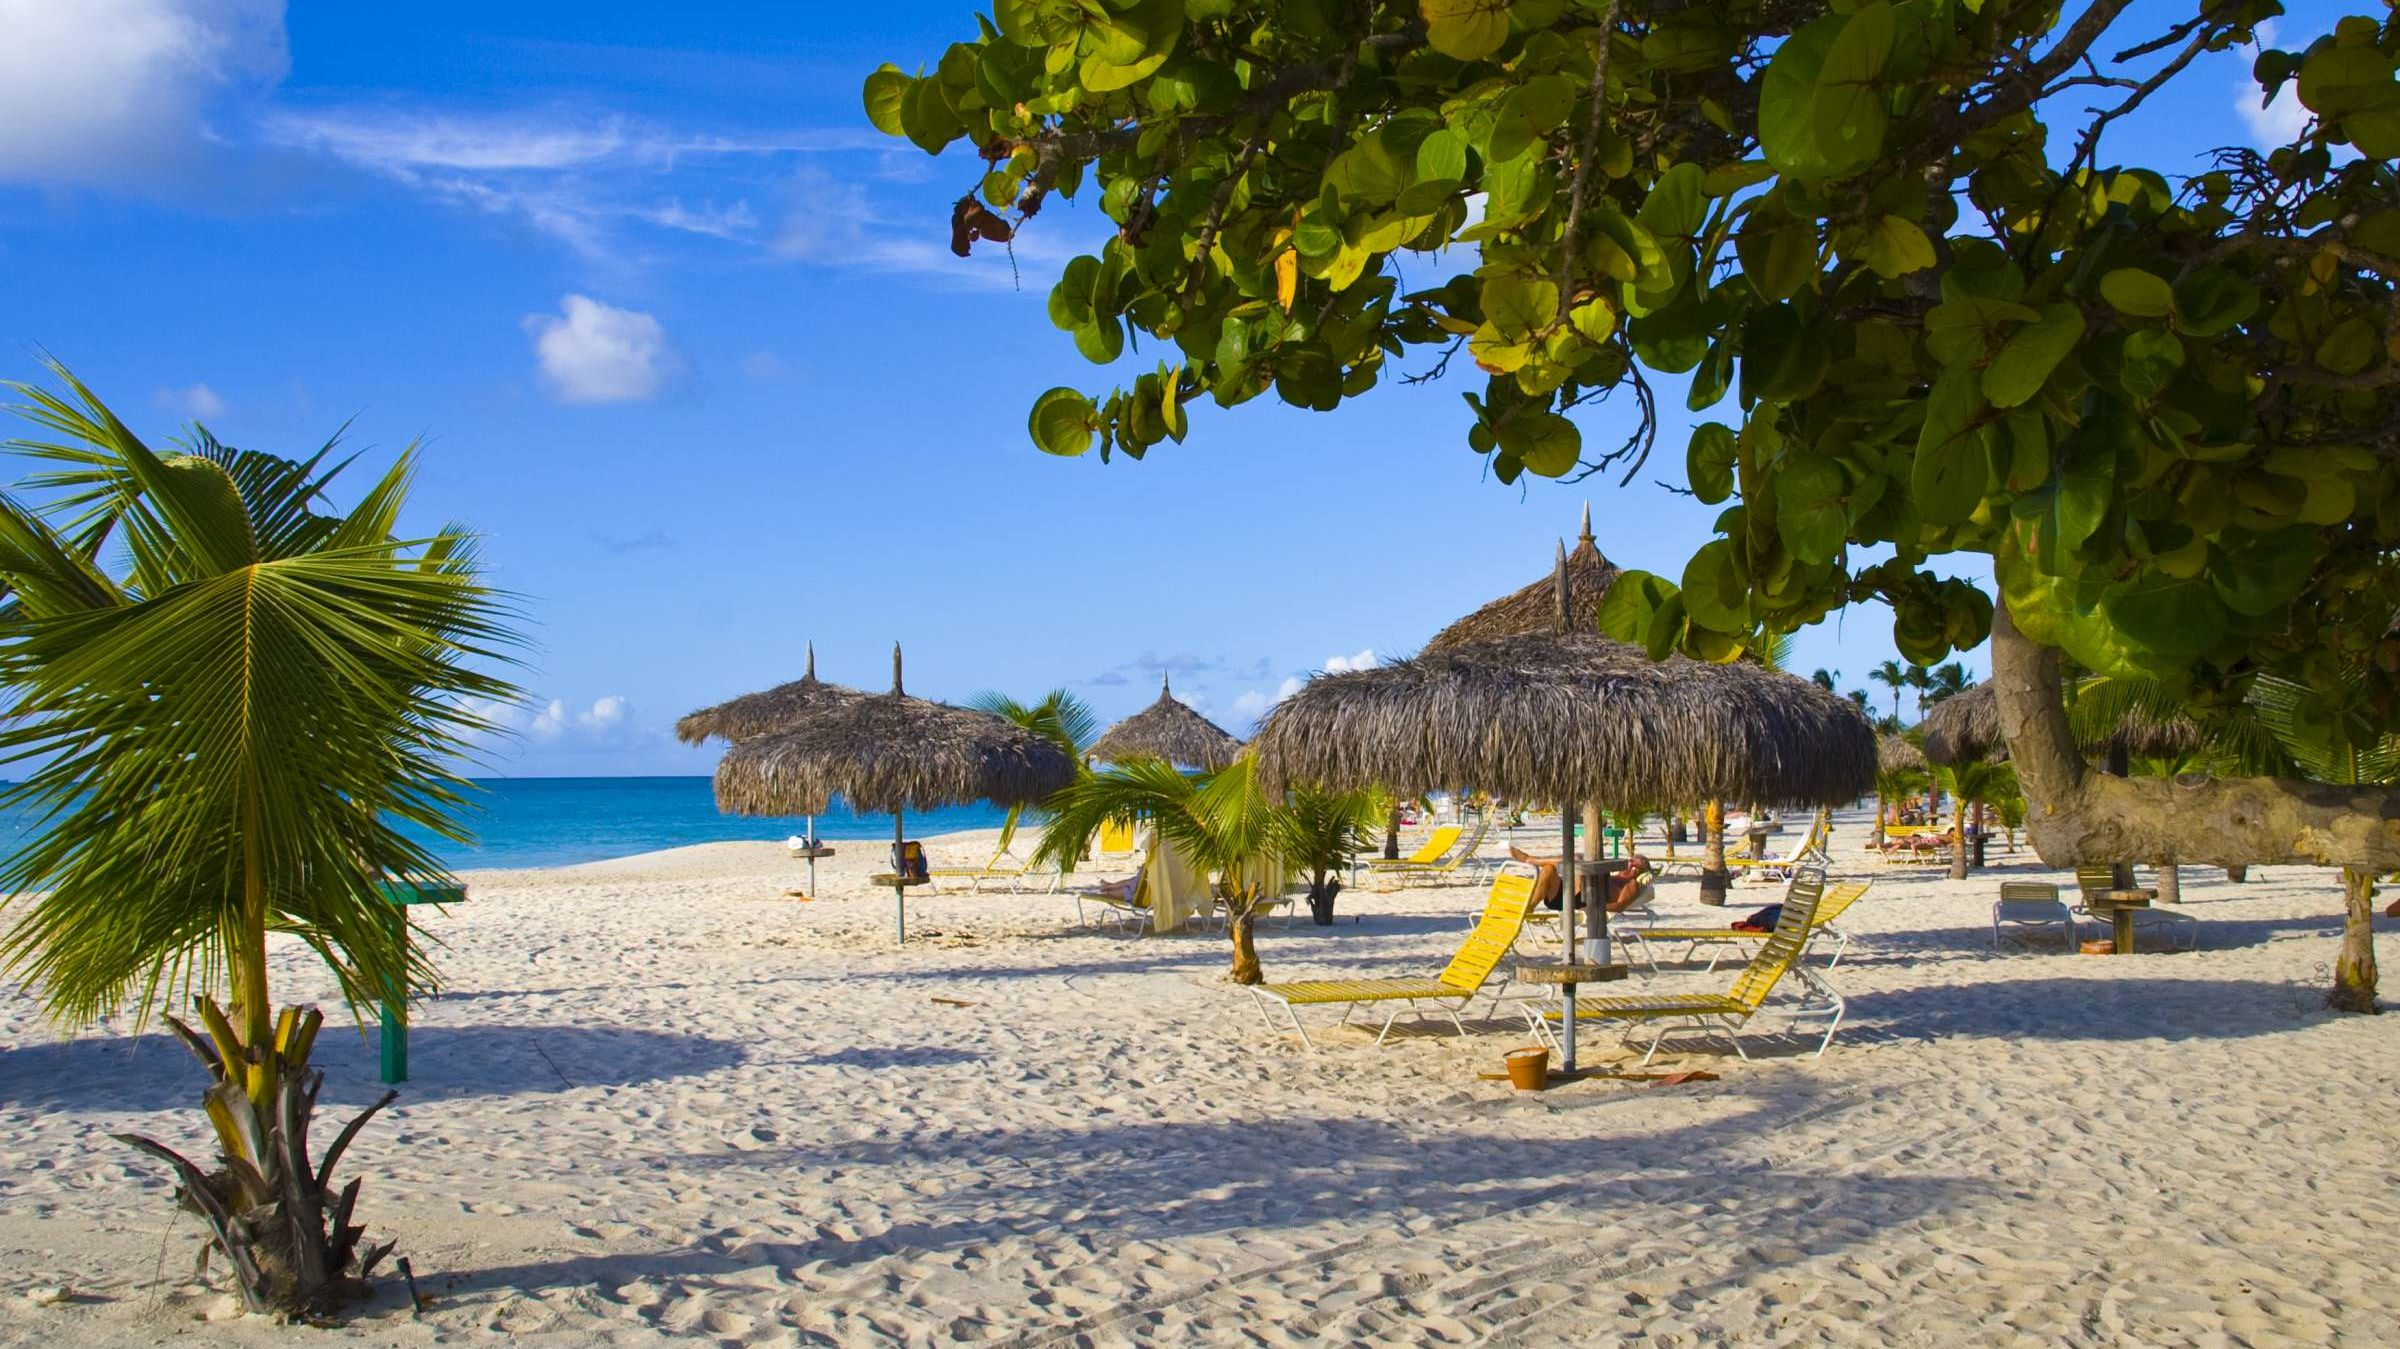 Aruba Is Inviting People Who Work From Home to Work From The Beach Instead